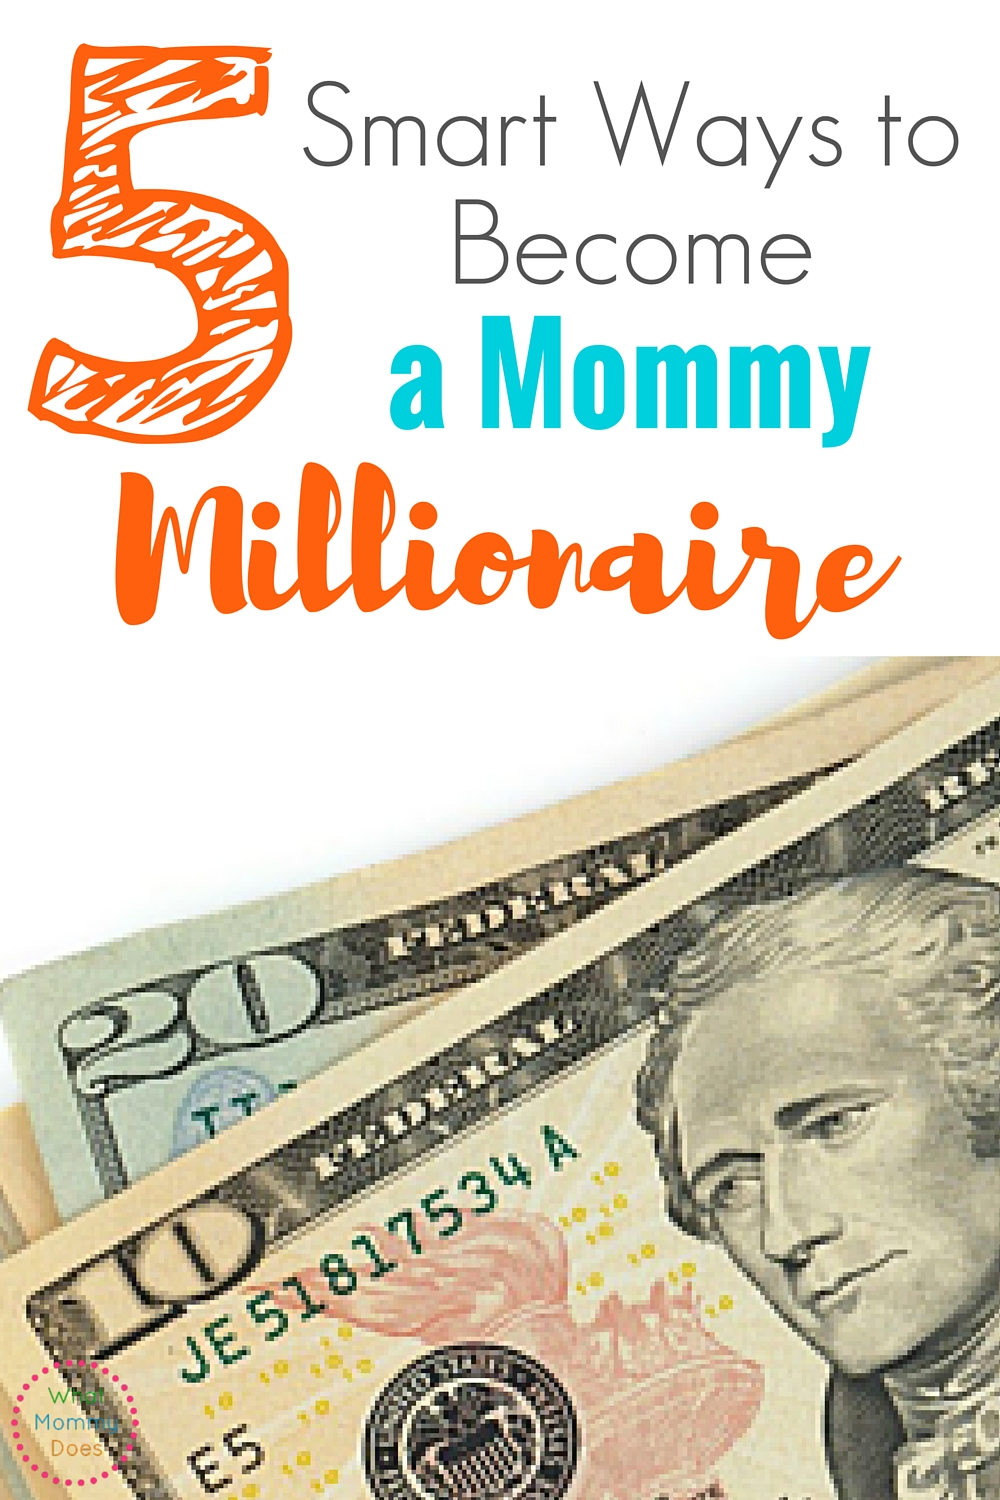 How to Become a Millionaire - these million dollar tips will put your income on overdrive!